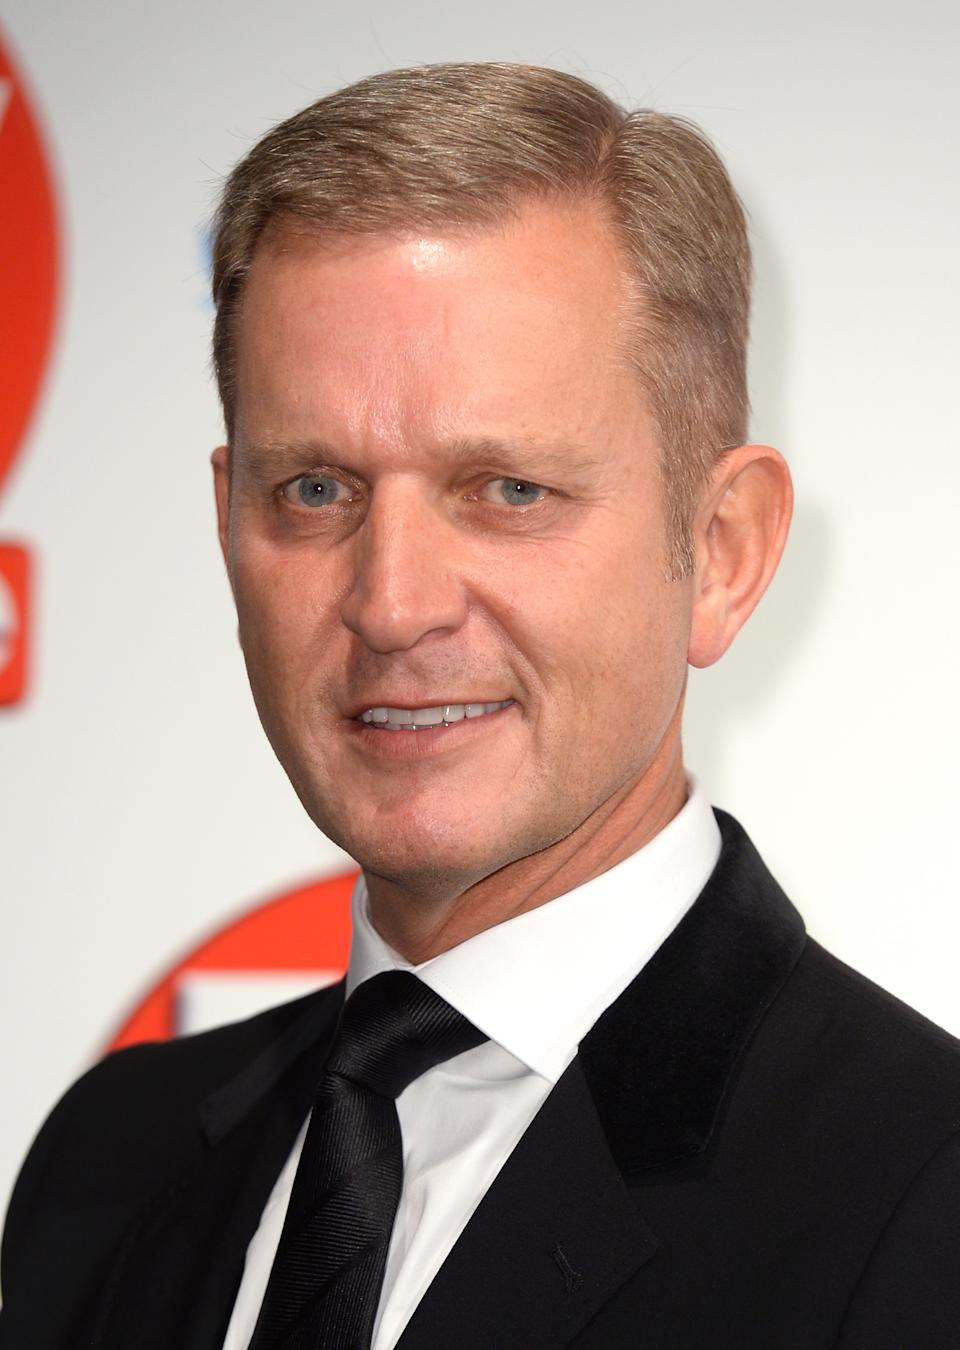 Jeremy Kyle arriving at the 2015 TV Choice Awards, The Park Lane Hilton, London.